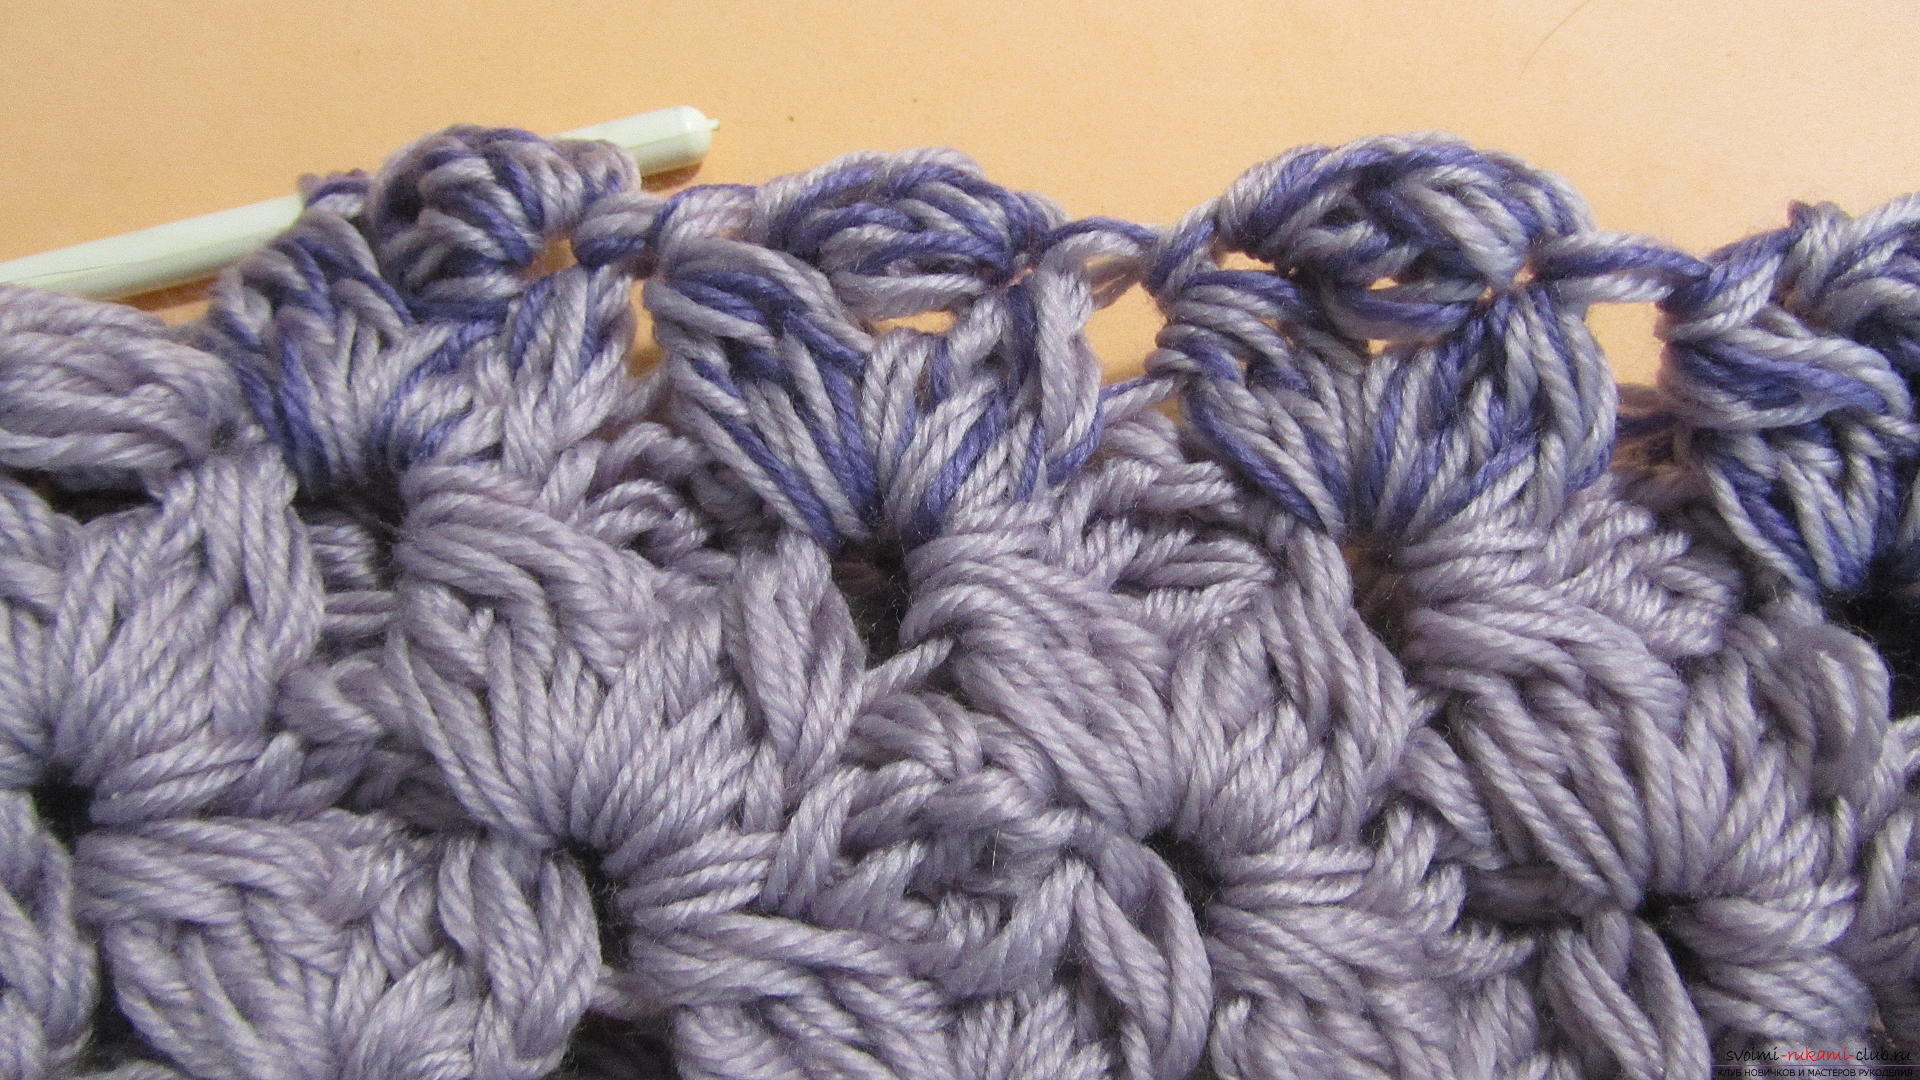 This detailed master class with a photo contains crochet snatch crochet patterns. Picture # 24